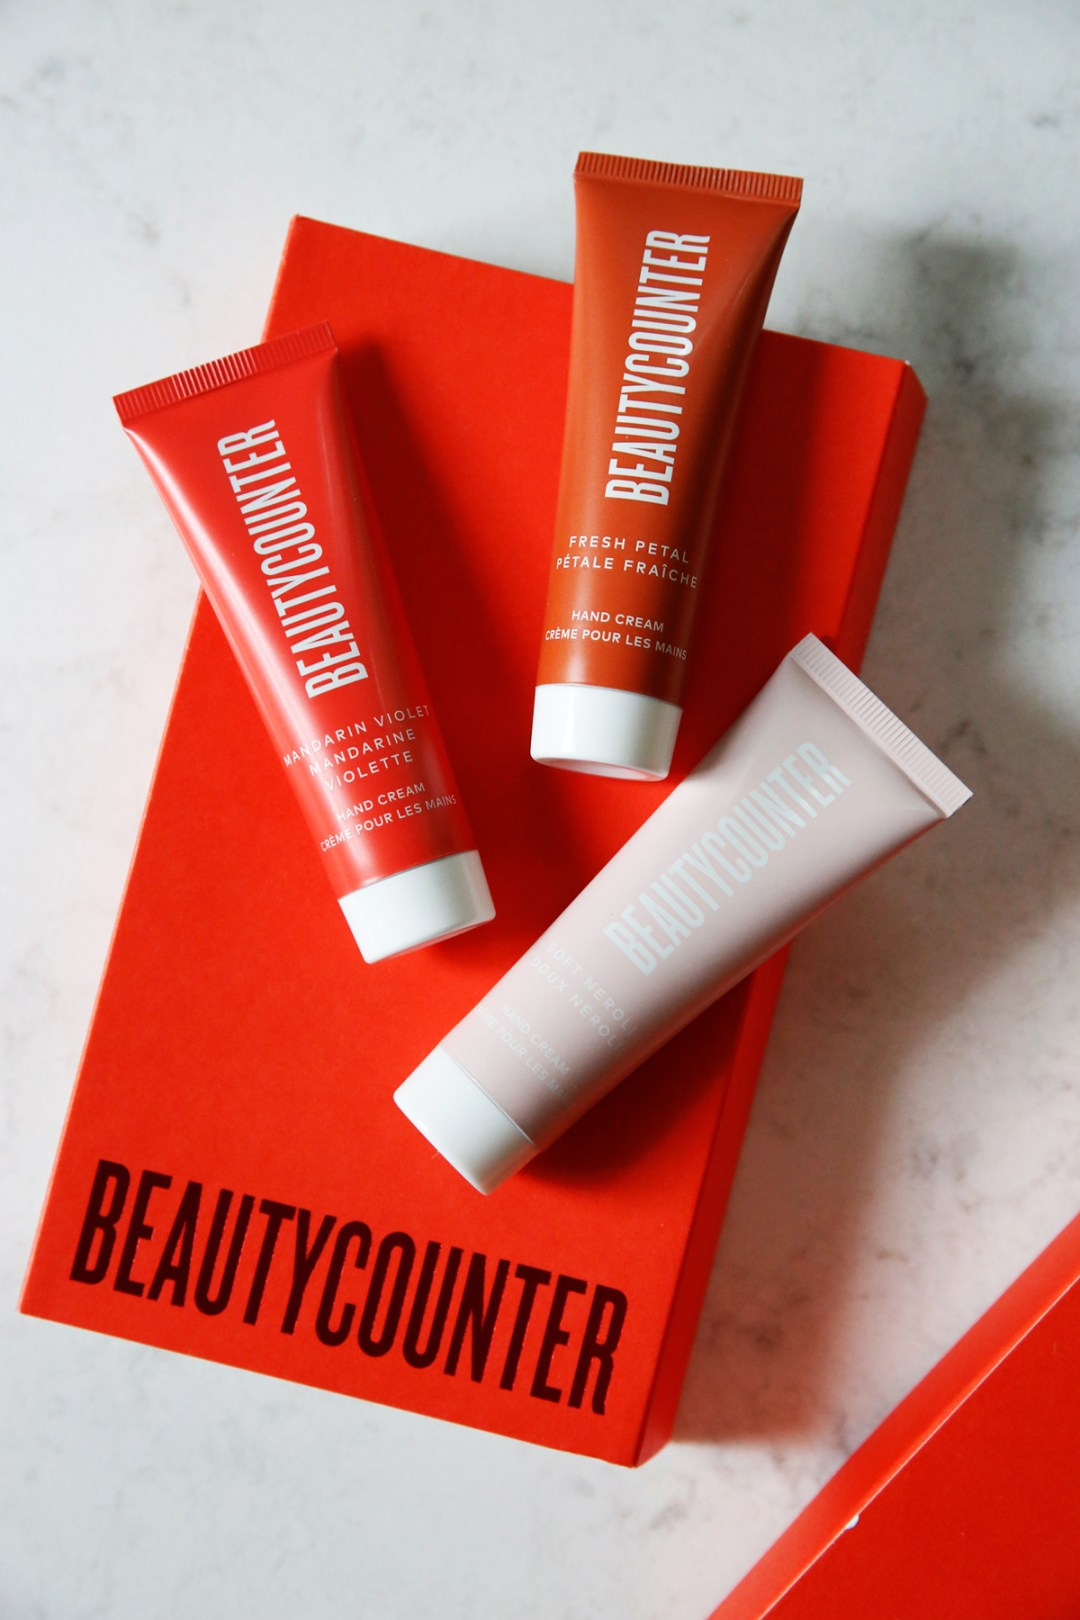 Beautycounter Holiday Gift Guide